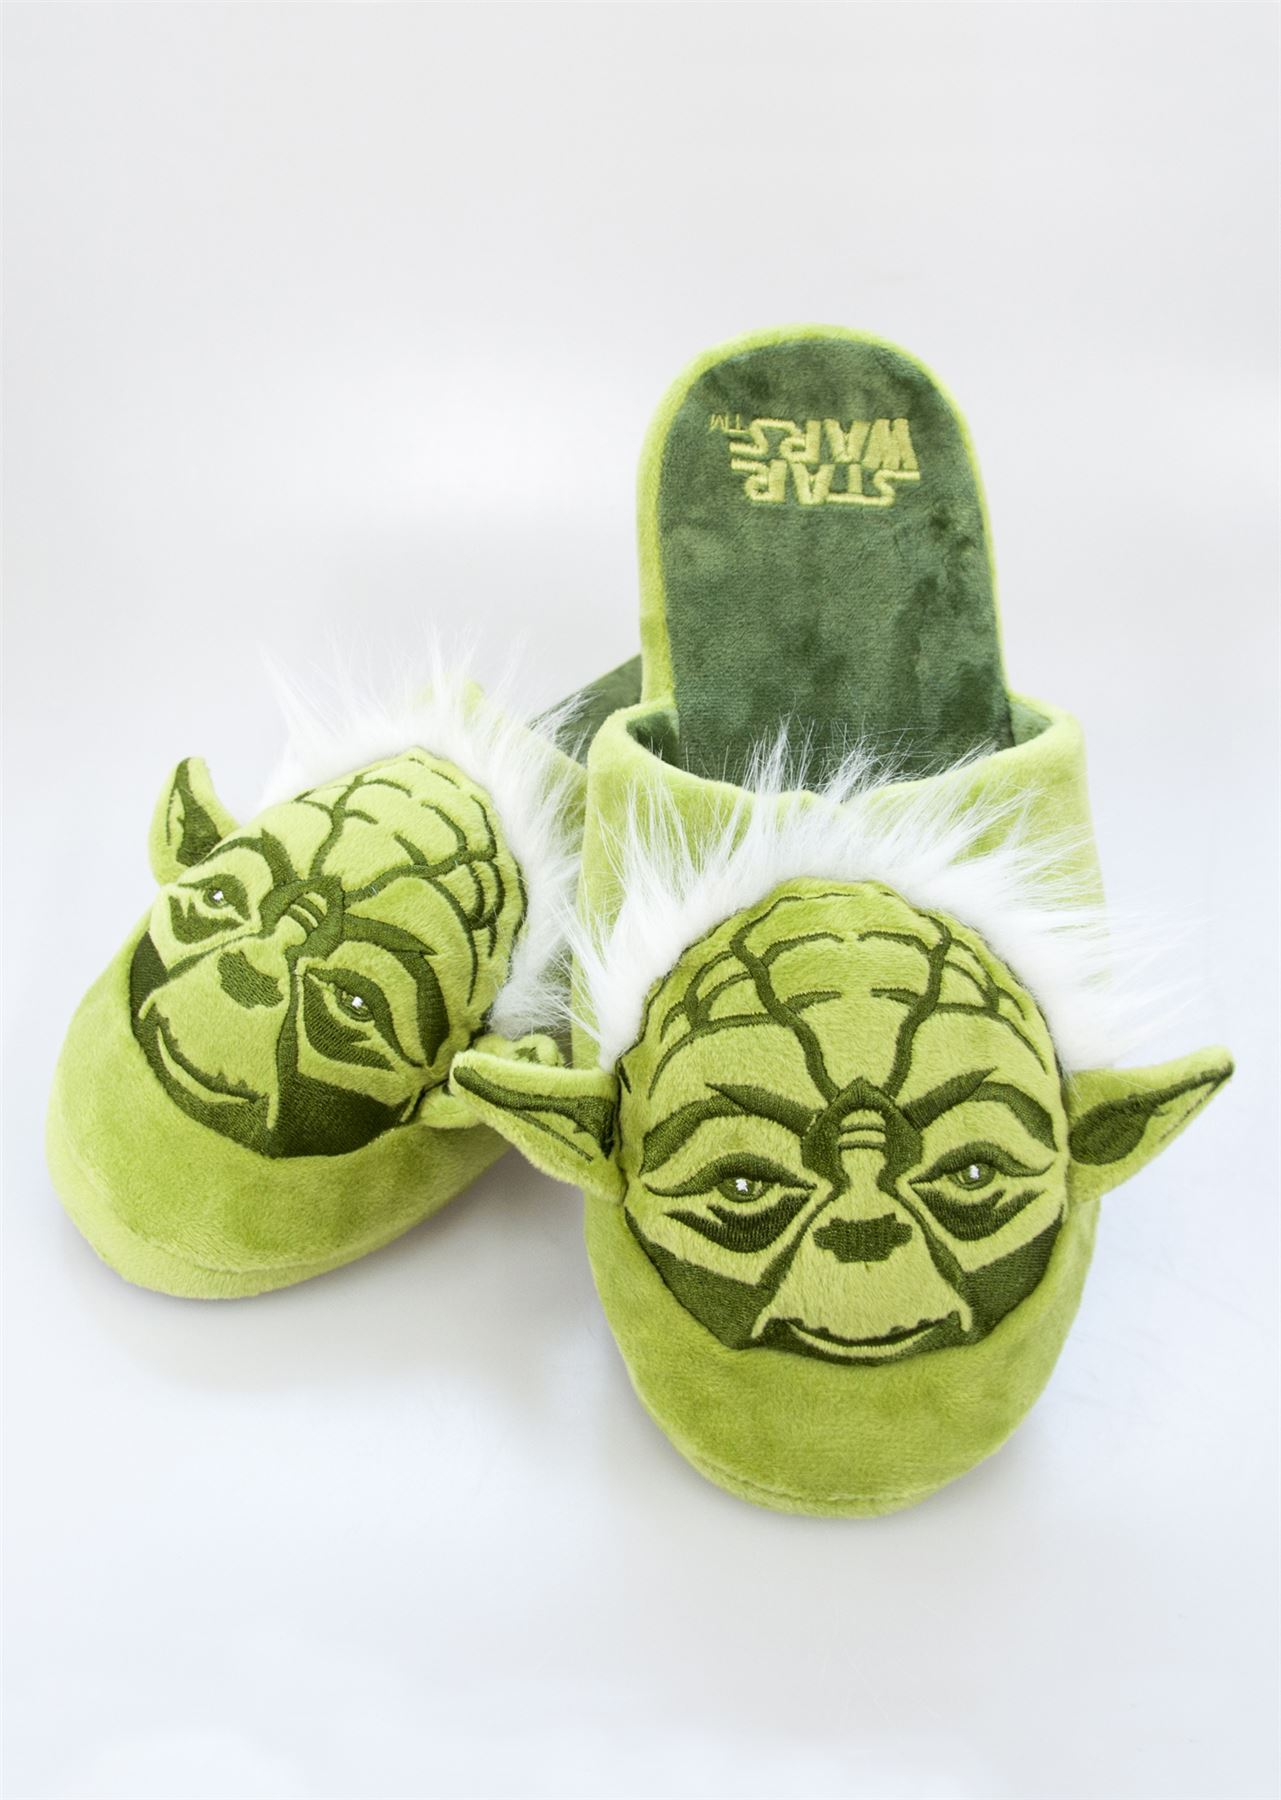 6086f3cf9cb3 Official Star Wars Slippers Last Jedi Adult Slip On Mule Slippers Size 5-10